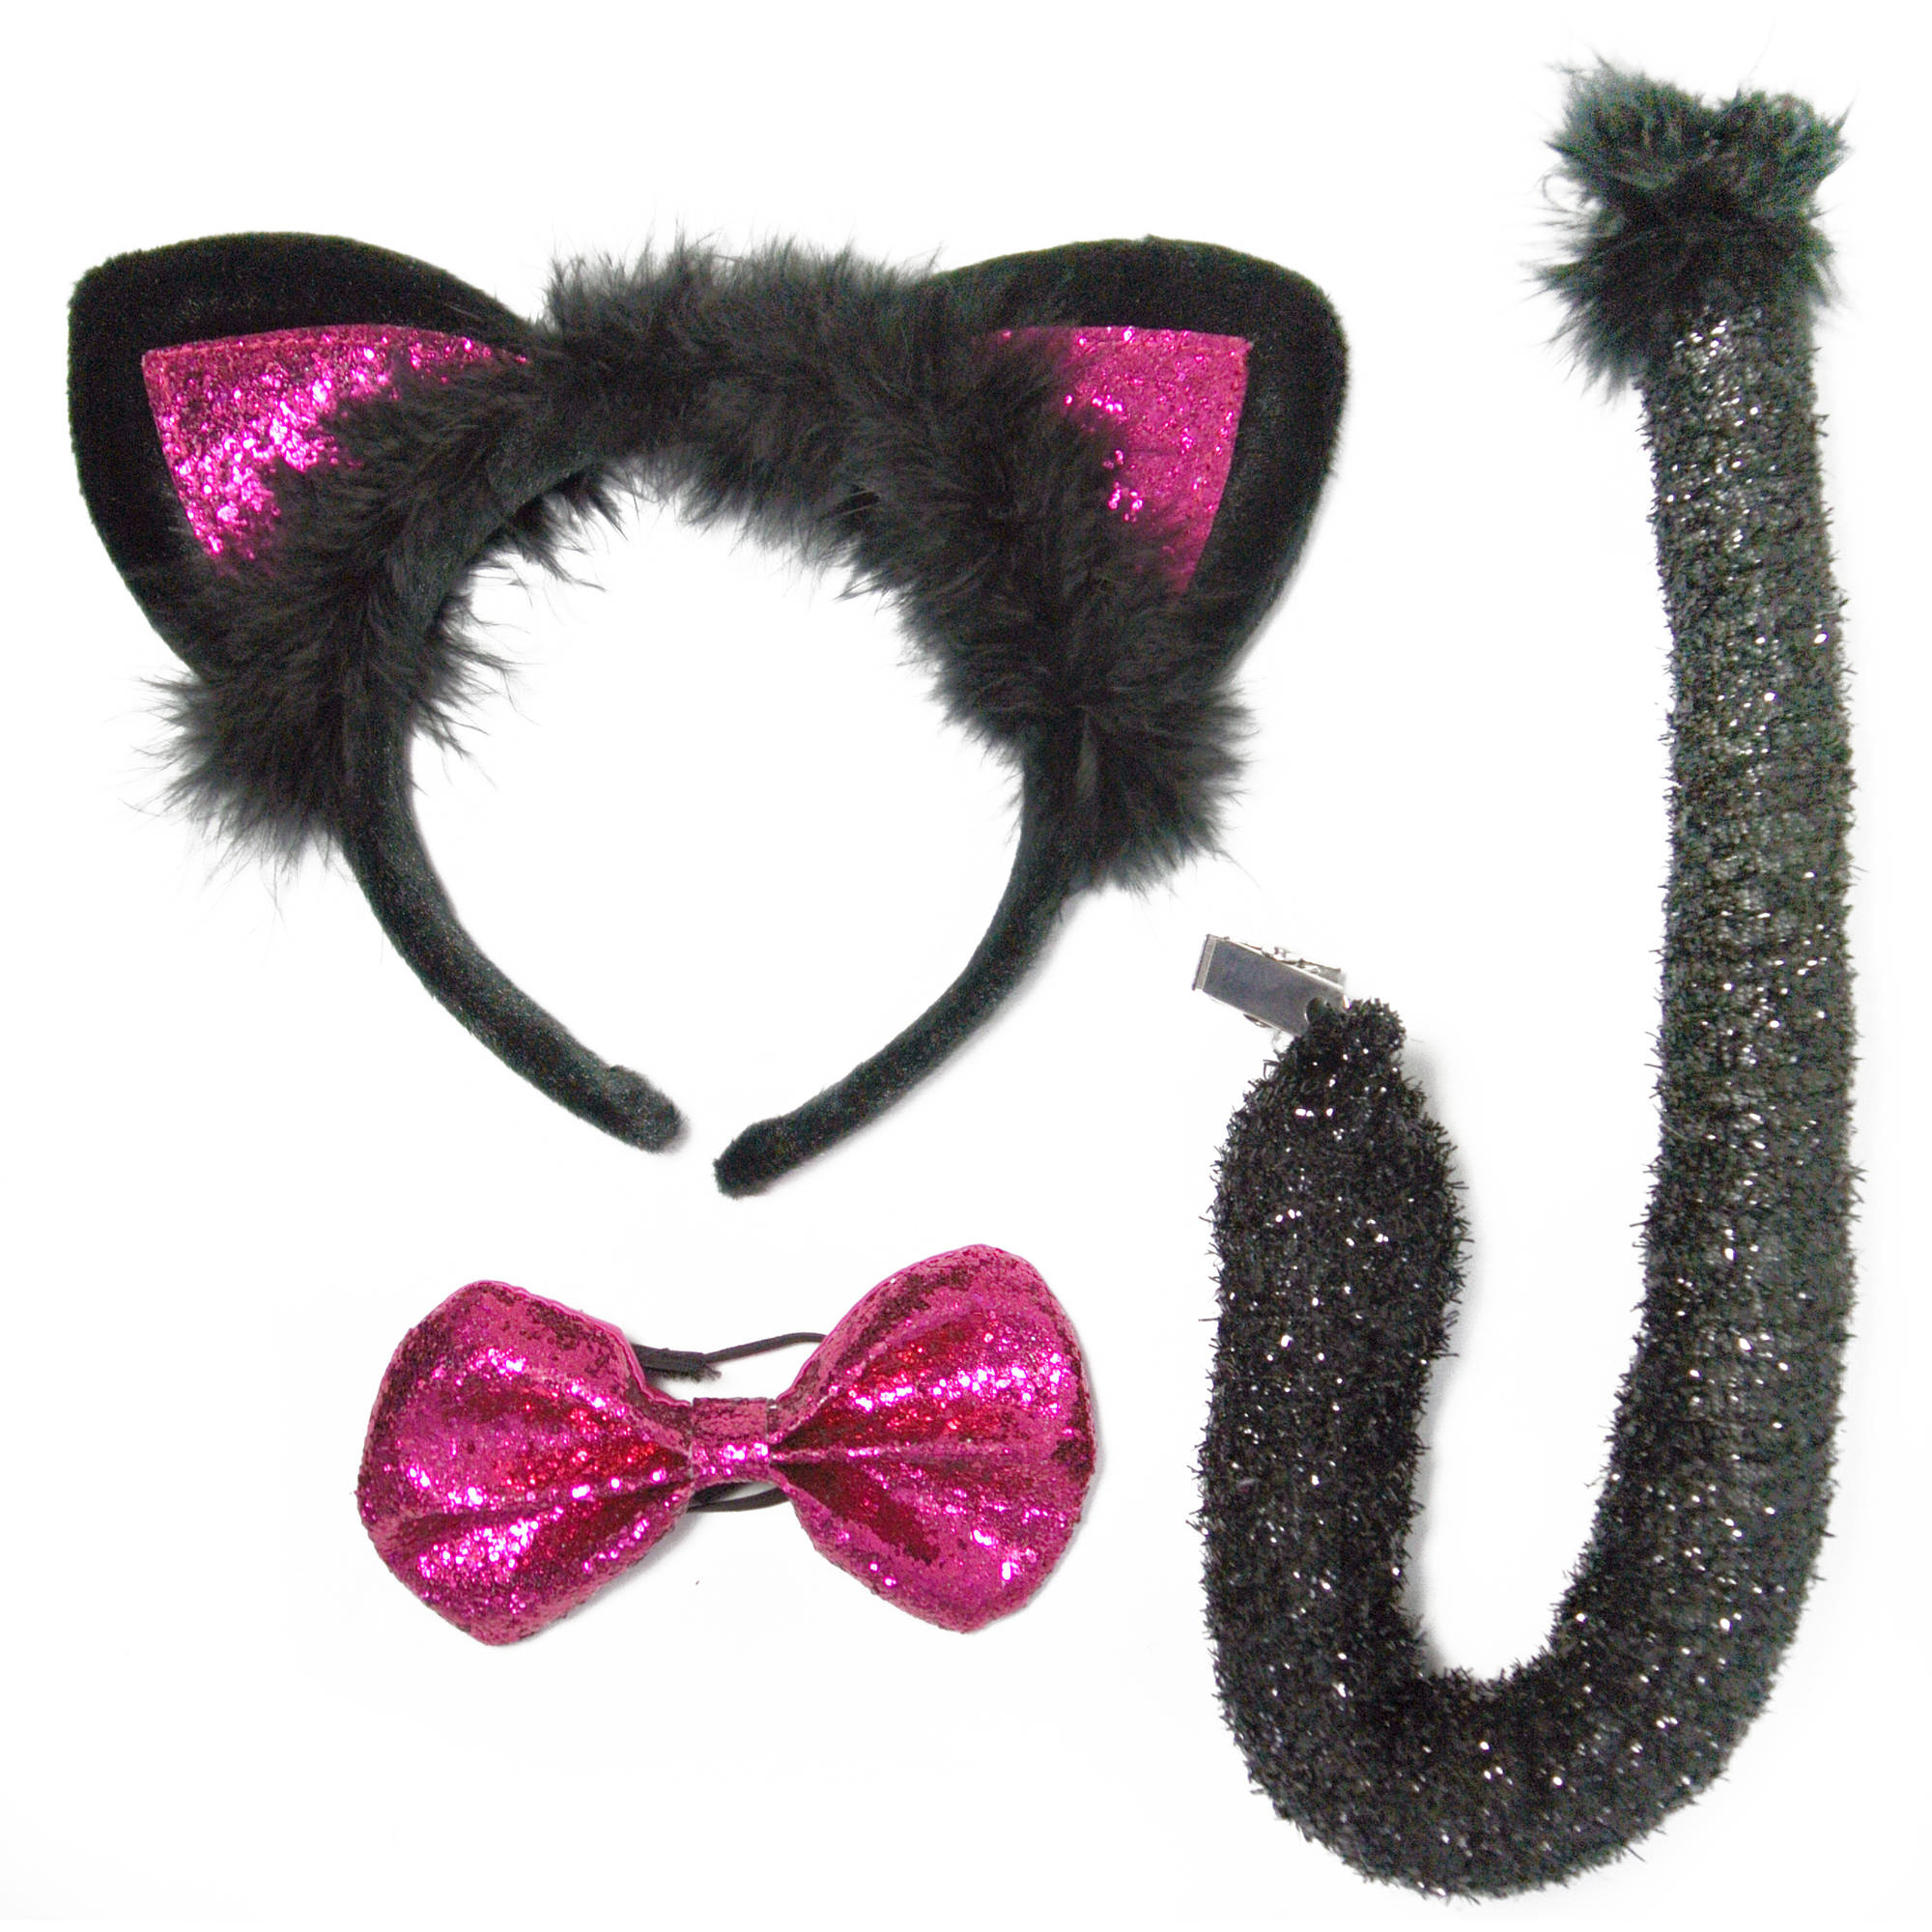 Hot Pink Cat Ears Halloween Accessory Kit